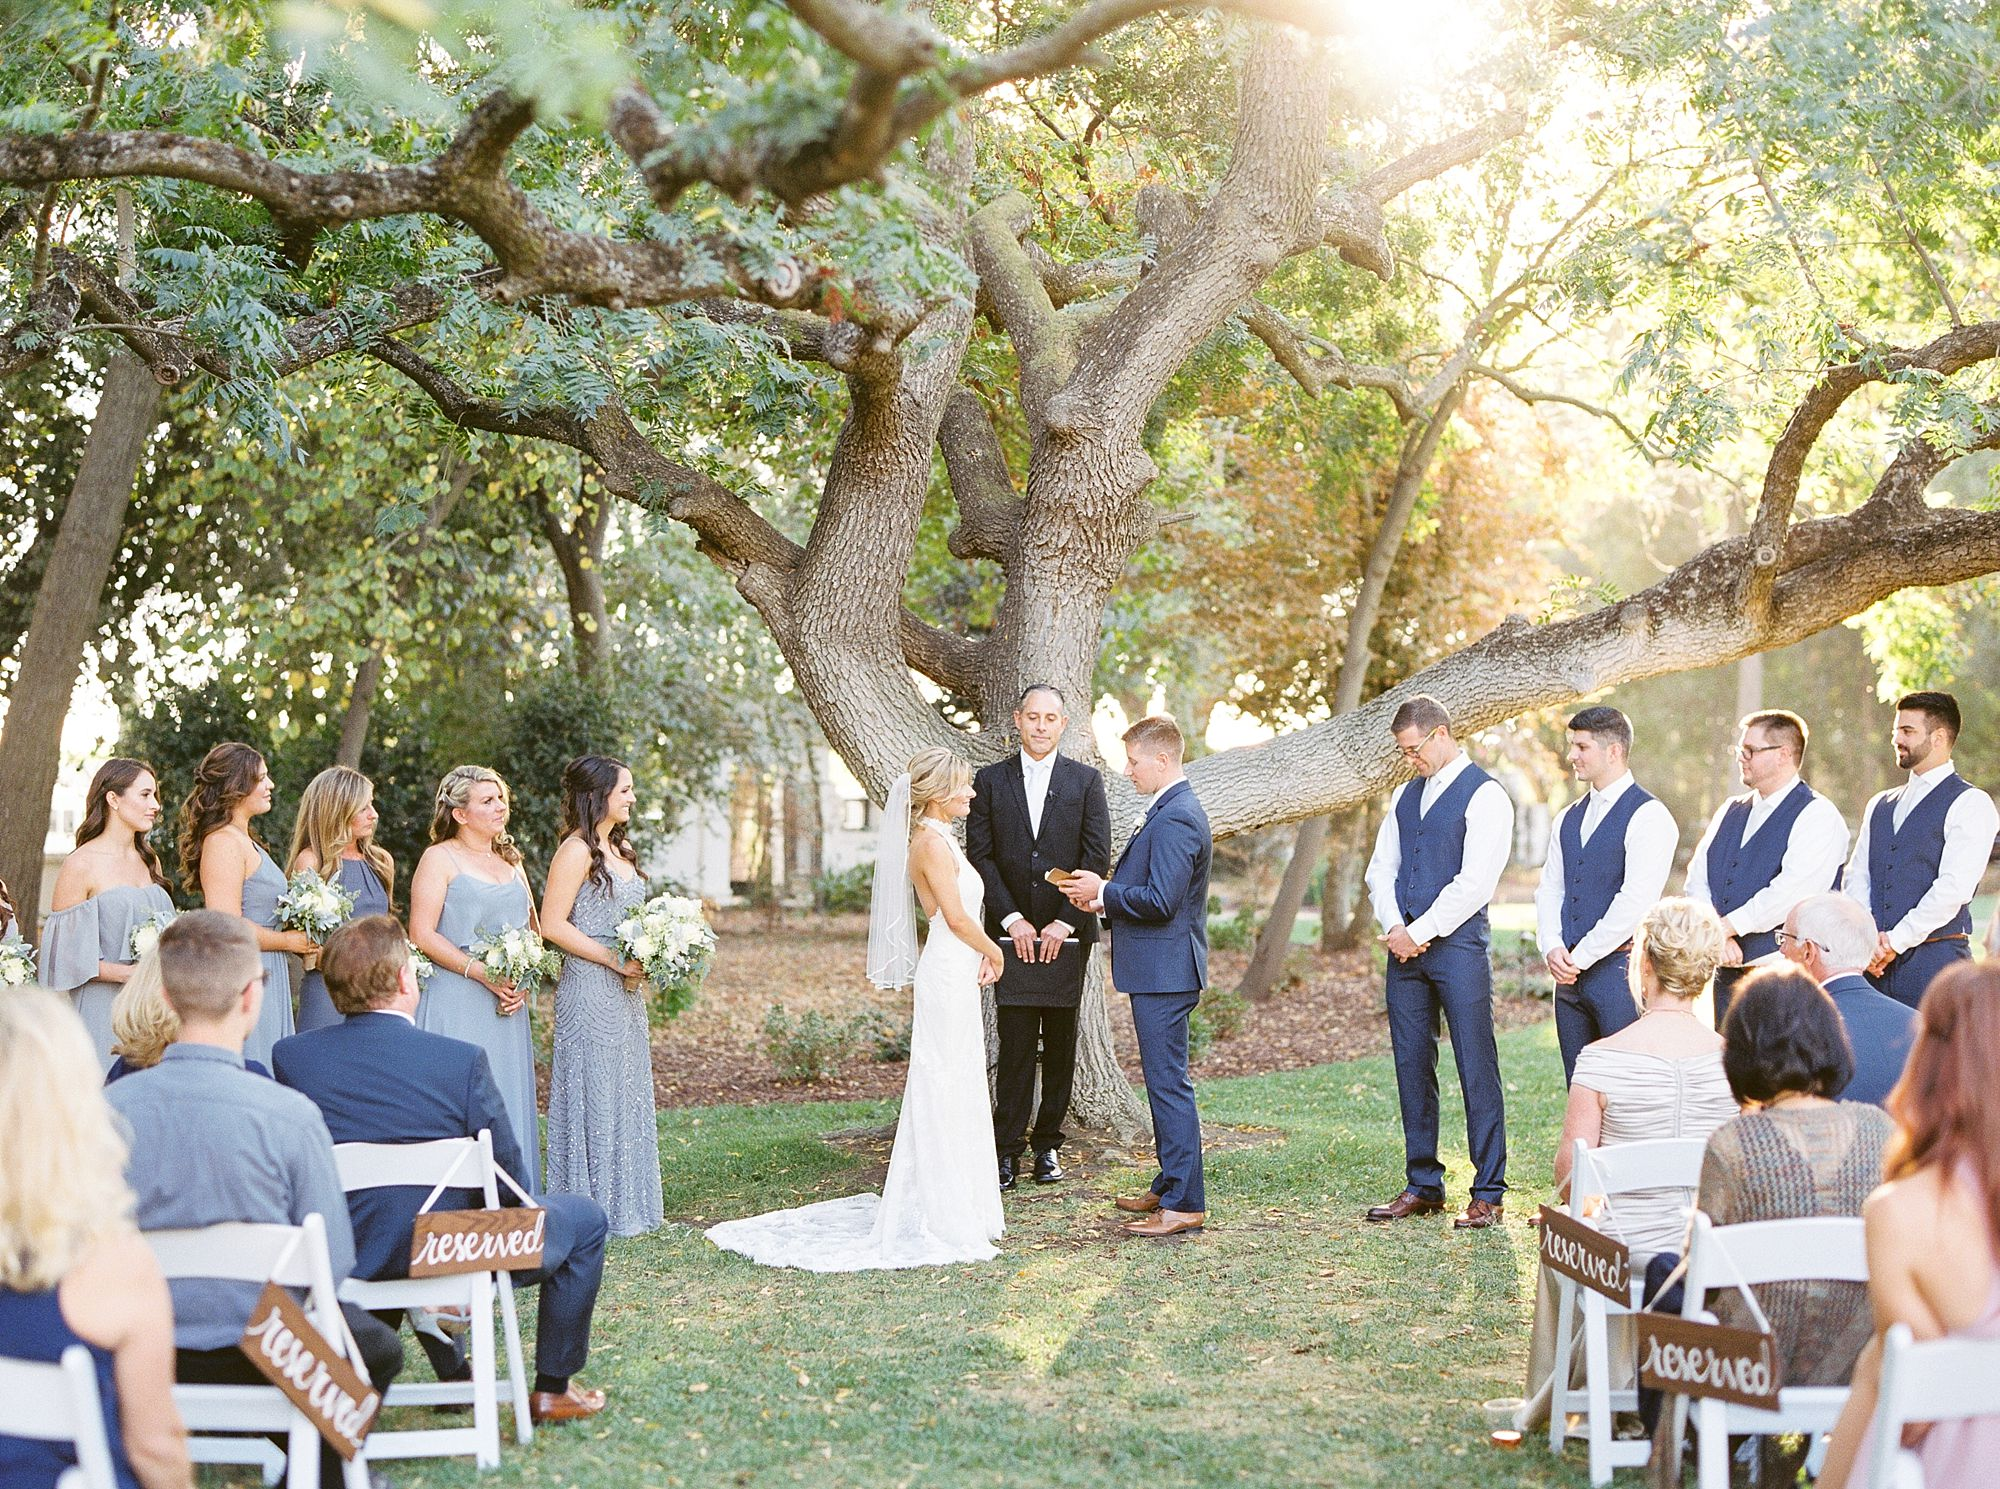 The Maples Wedding in Woodland California - Ashley Baumgartner - Sacramento Wedding Photographer - Sacramento Film Photographer_0042.jpg